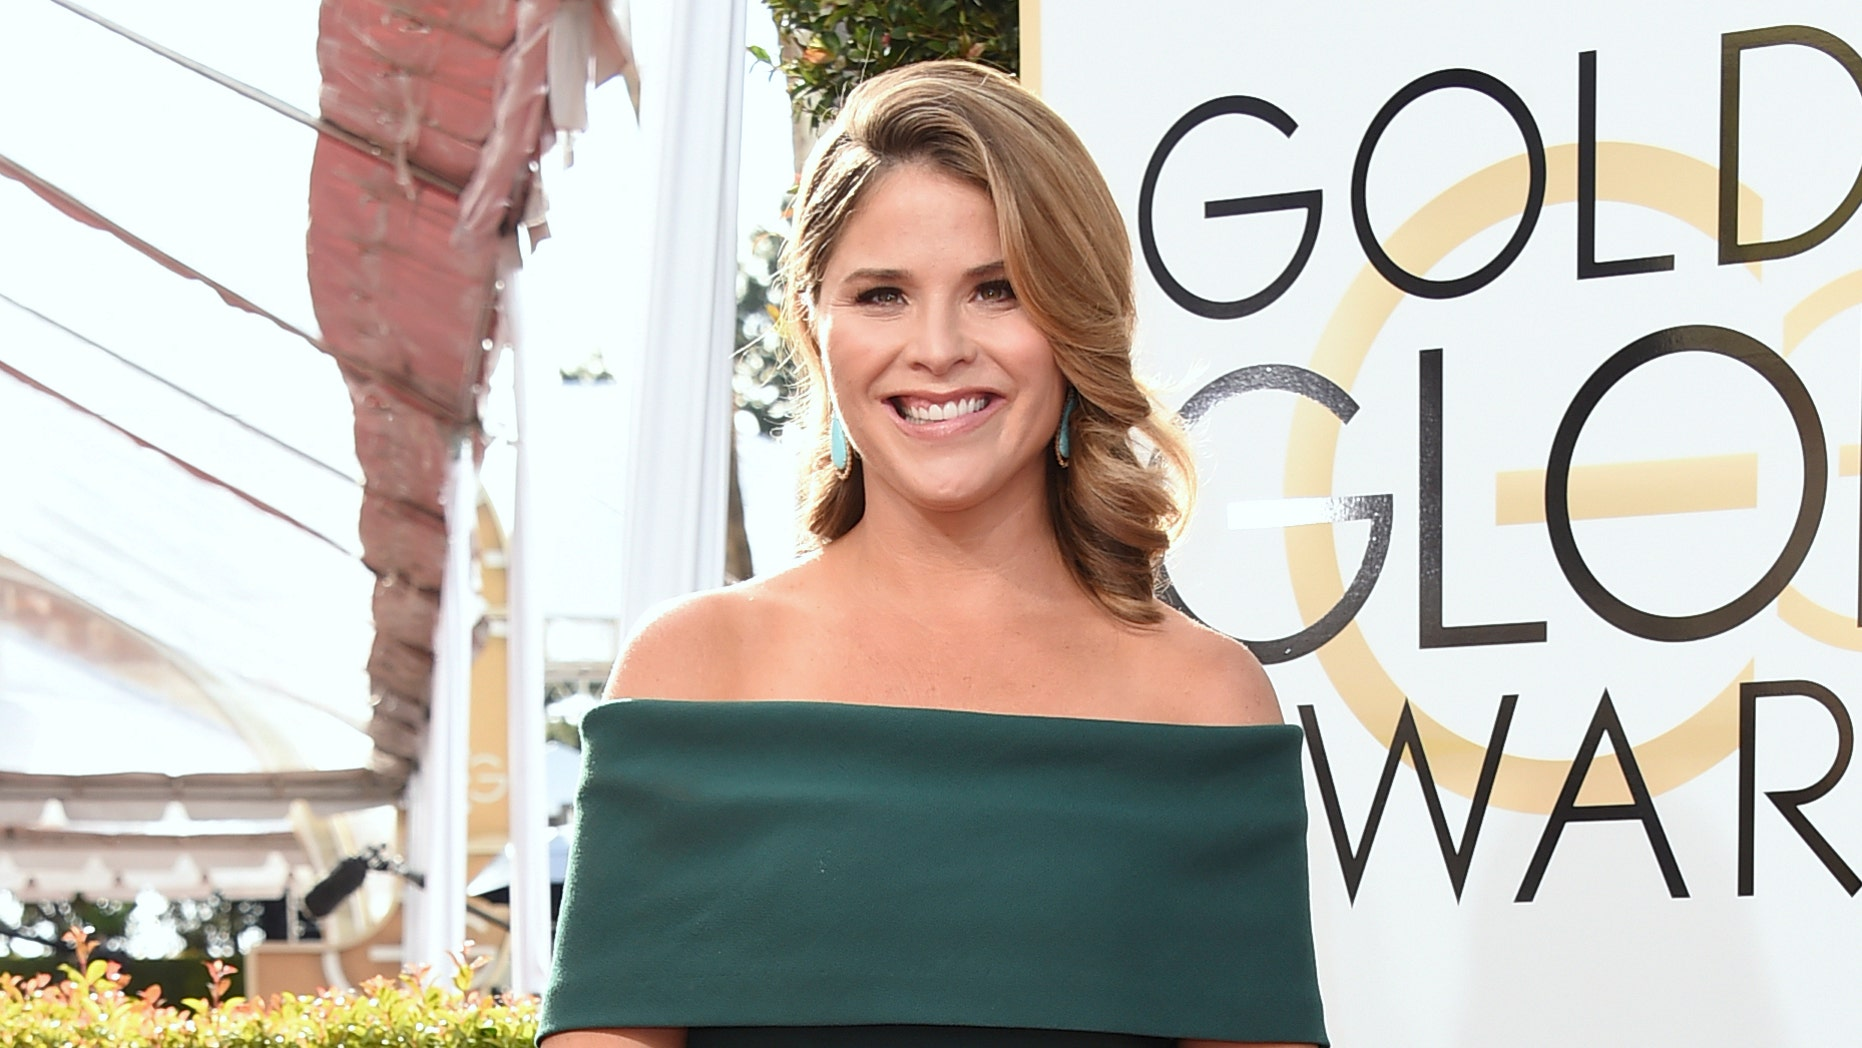 Jenna Bush Hager Expecting Baby #3 - Is It a Boy or Girl?